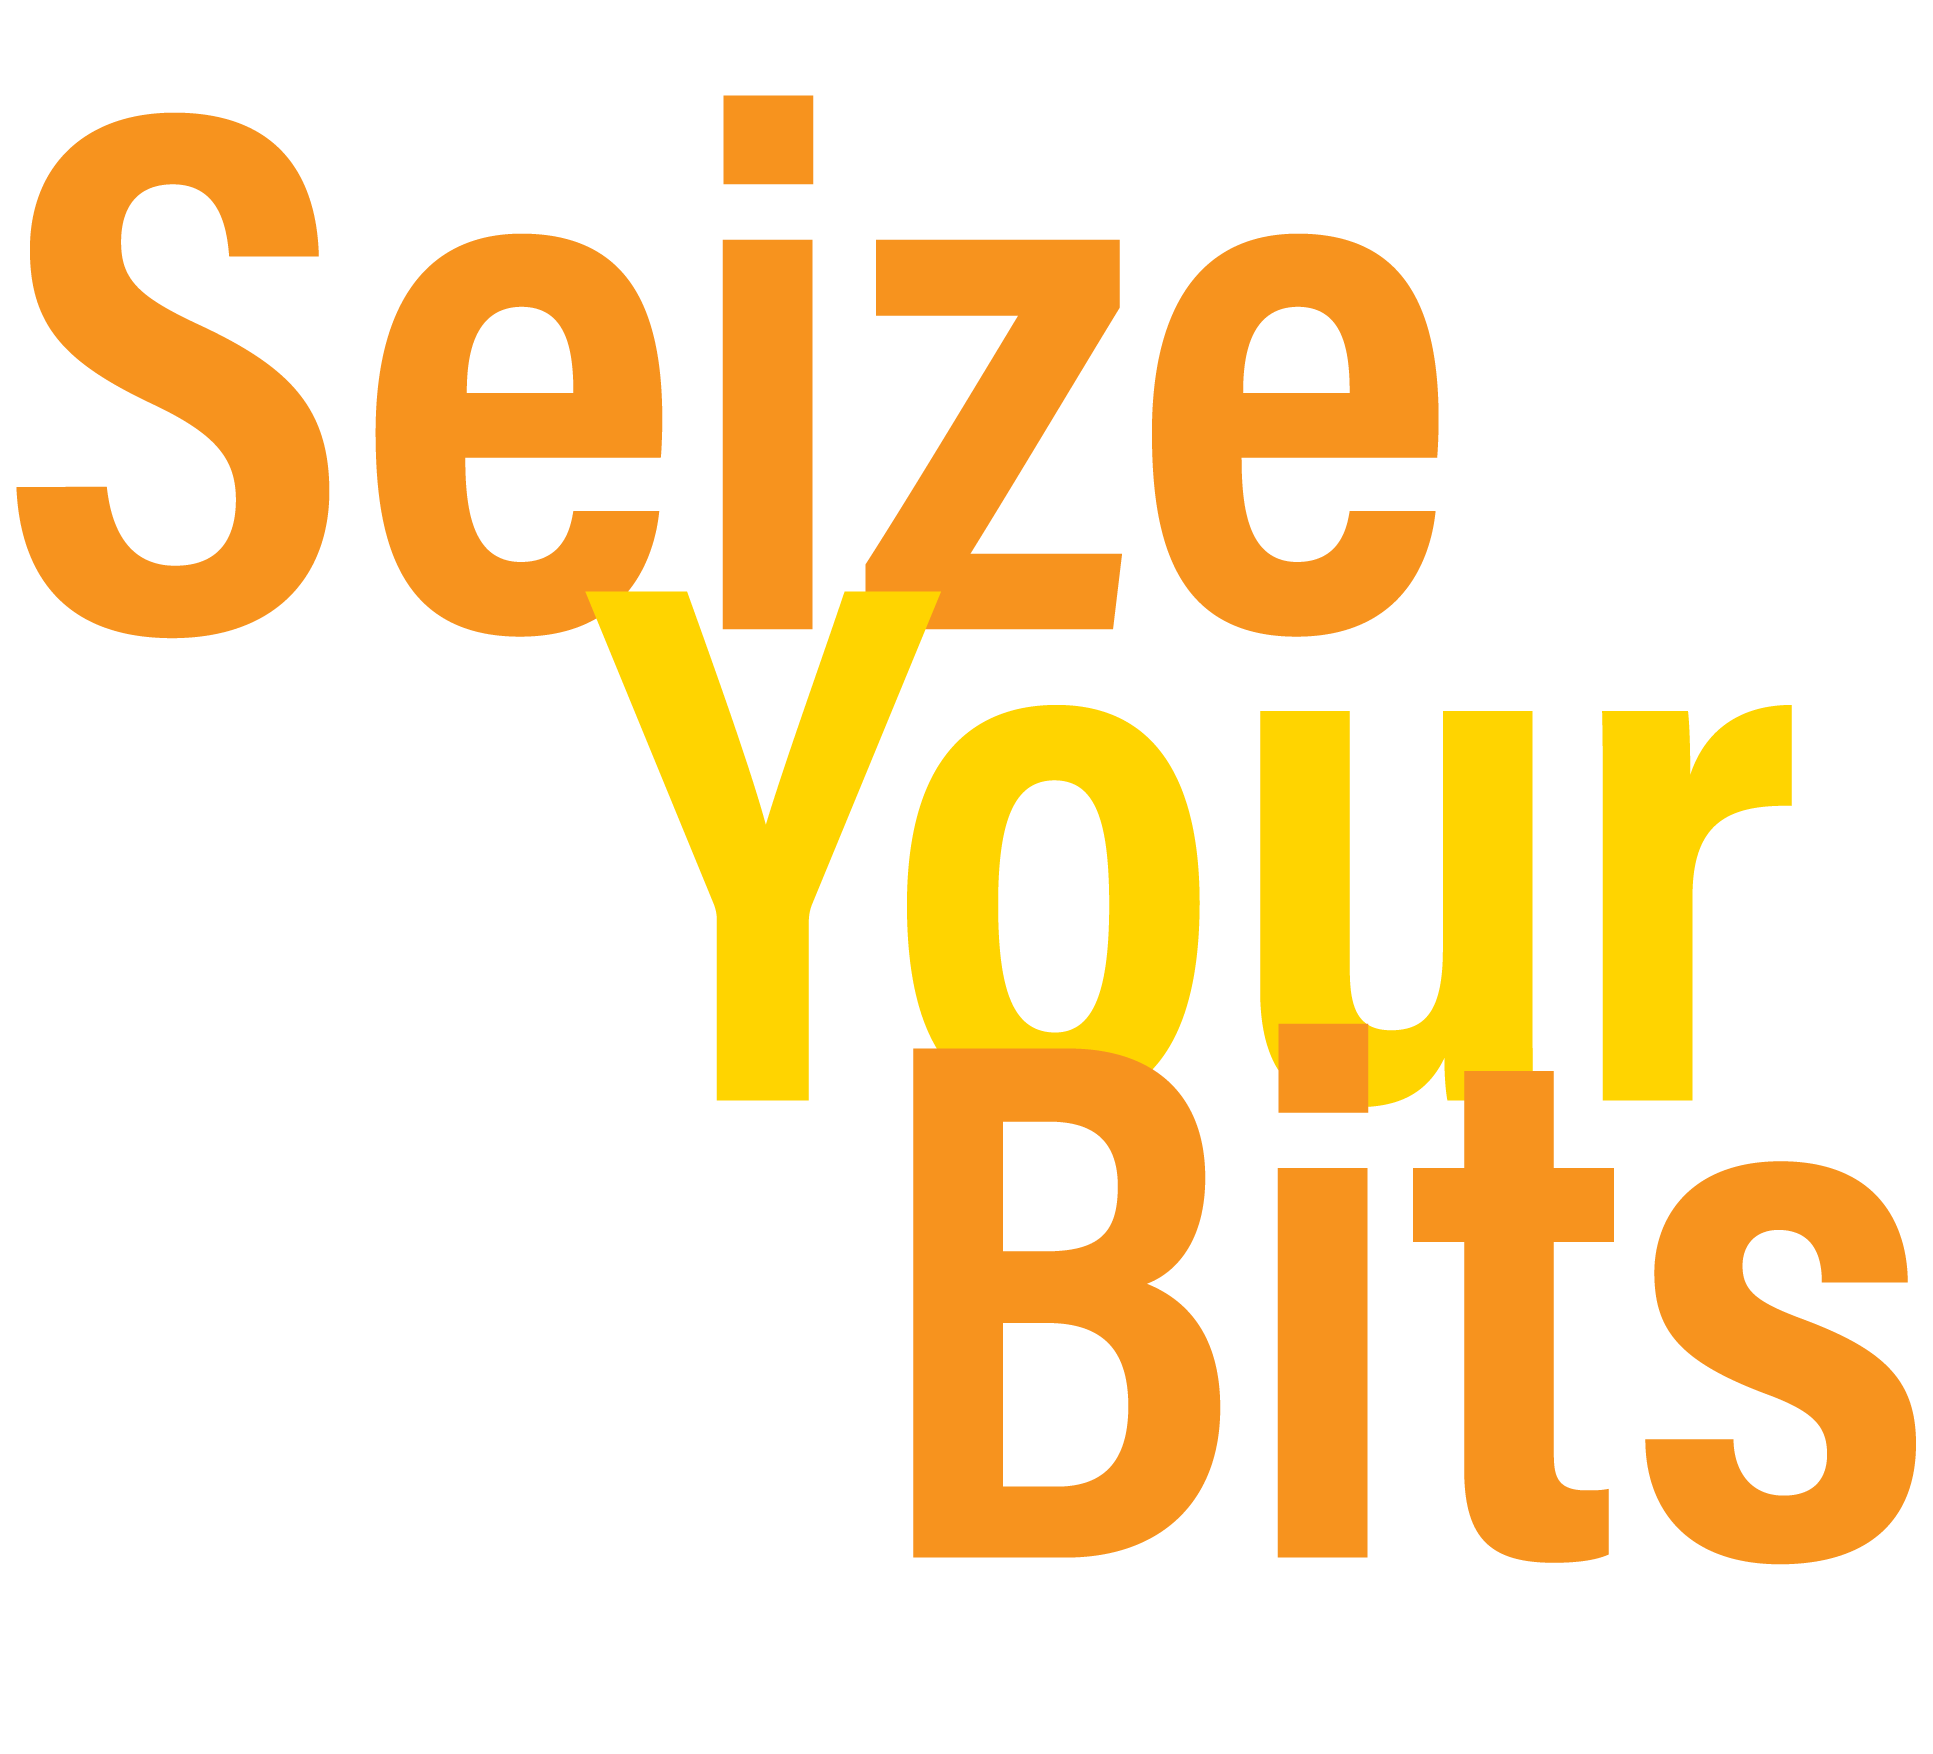 Seize Your Bits, Understanding Digital Currency, digital currency learning, Cryptocurrency information